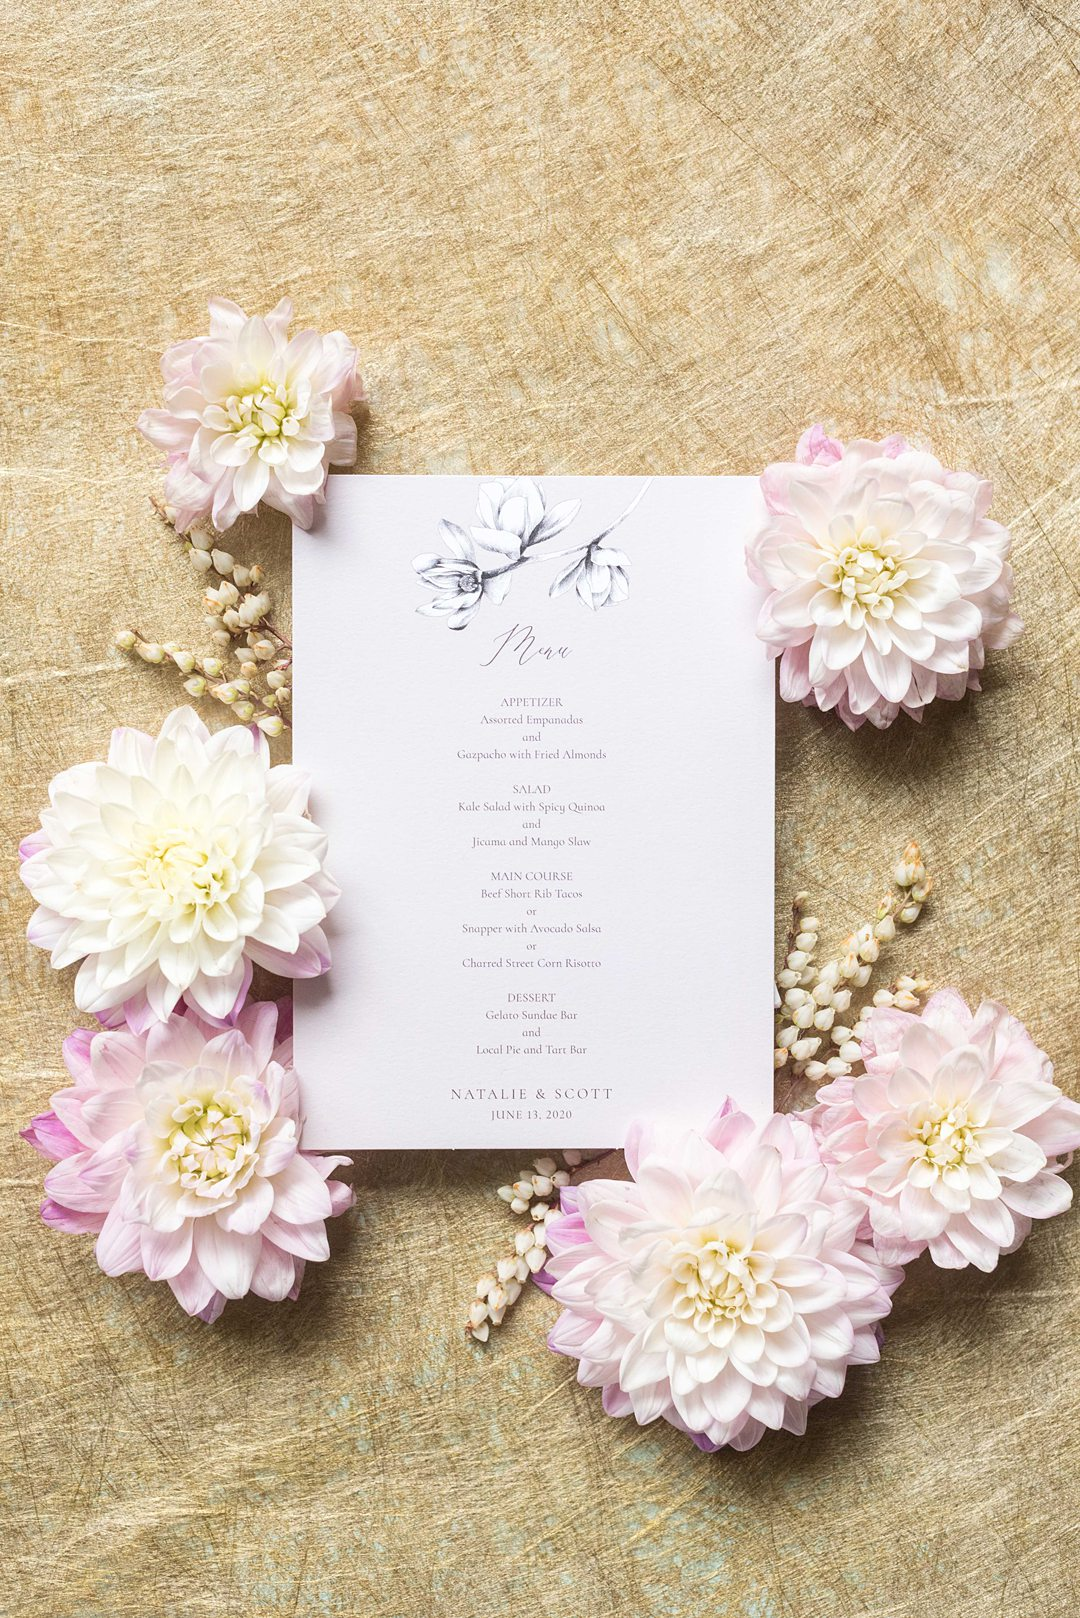 Wedding stationery offered by Zola photographed by Mikkel Paige Photography.